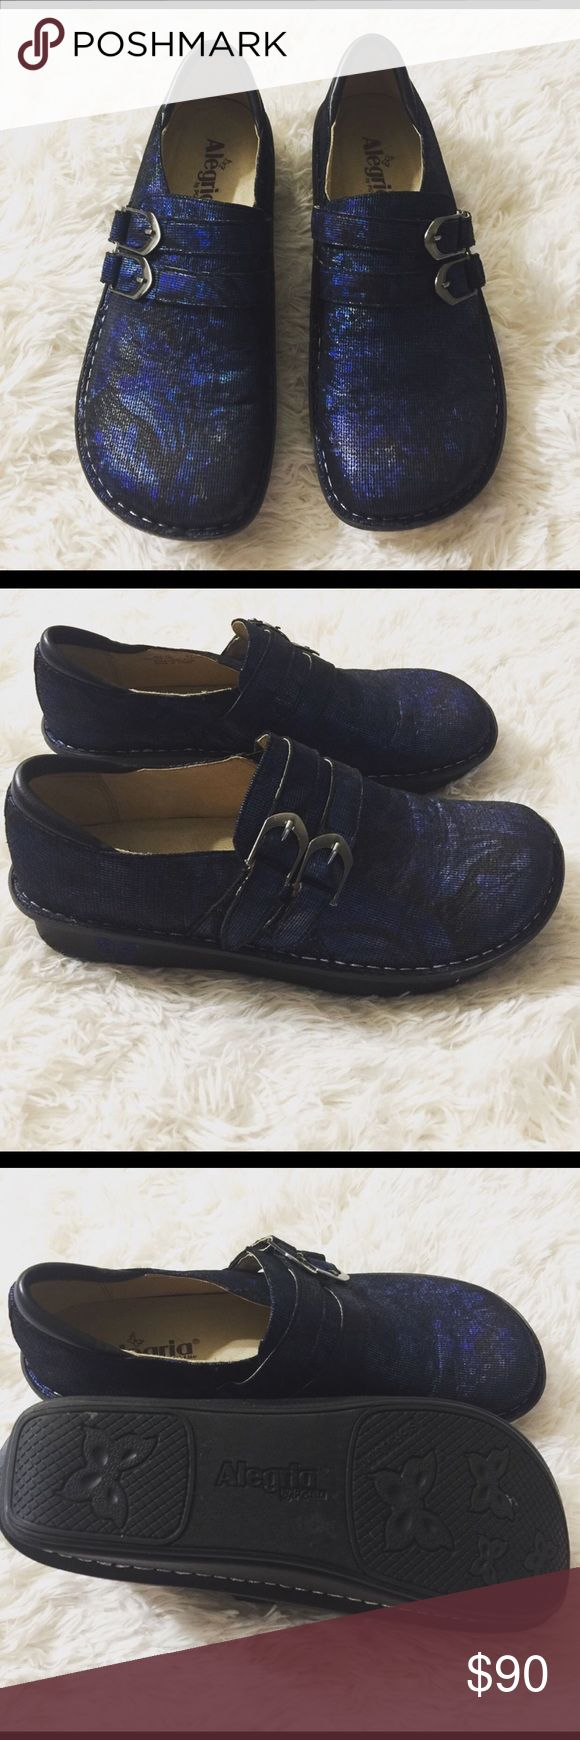 Alegria blue and black patterned mules Alegria blue and black patterned mules size 41 Alegria  Shoes Mules & Clogs